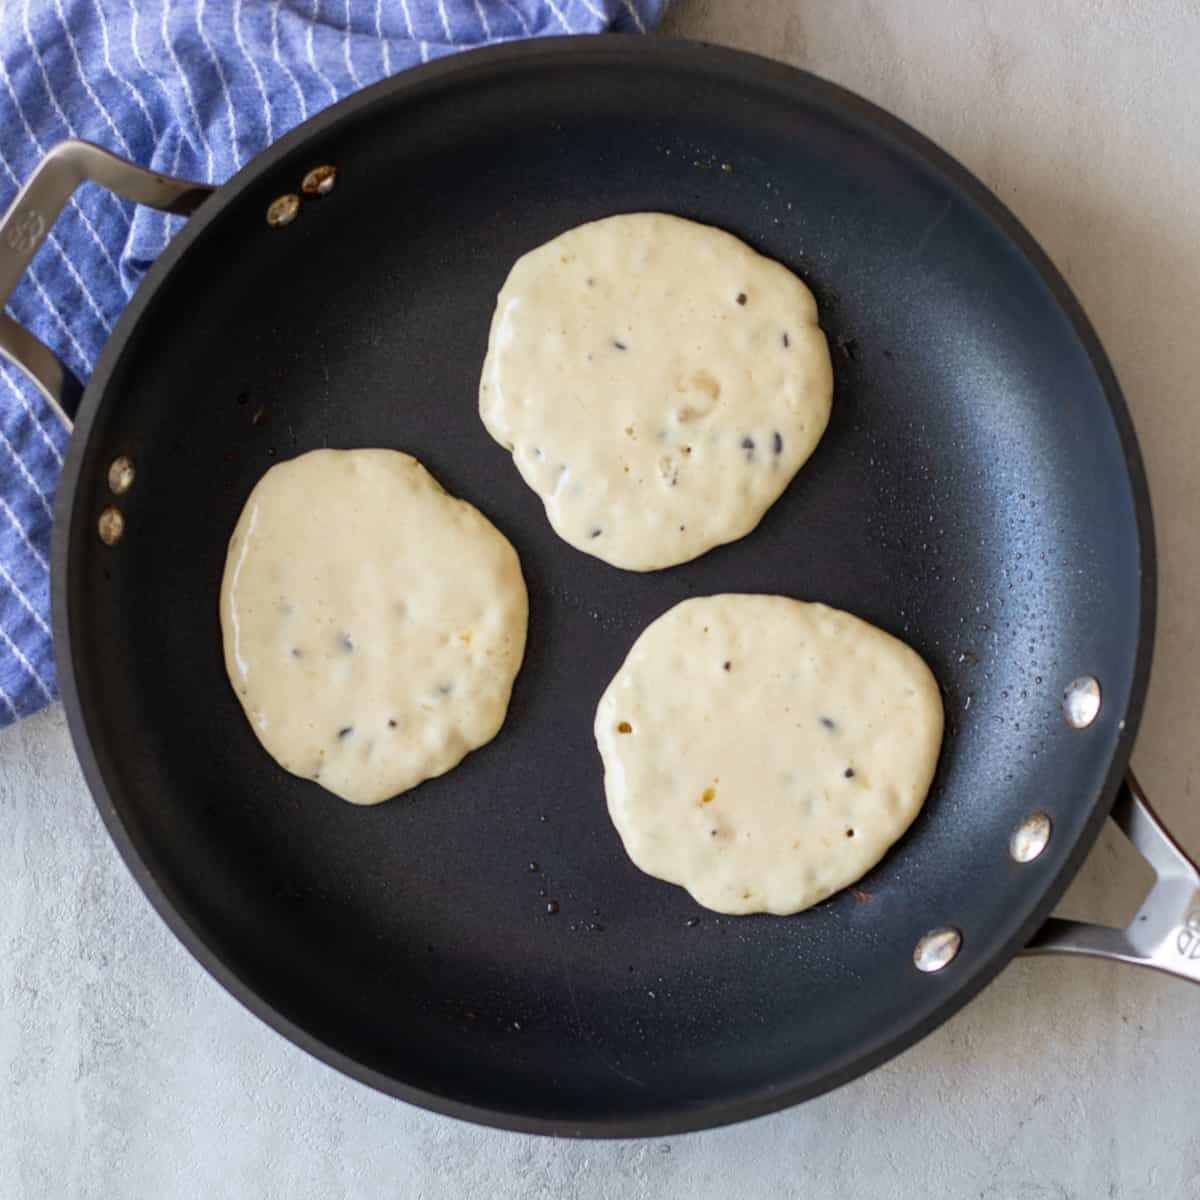 3 chocolate chip pancakes in skillet.